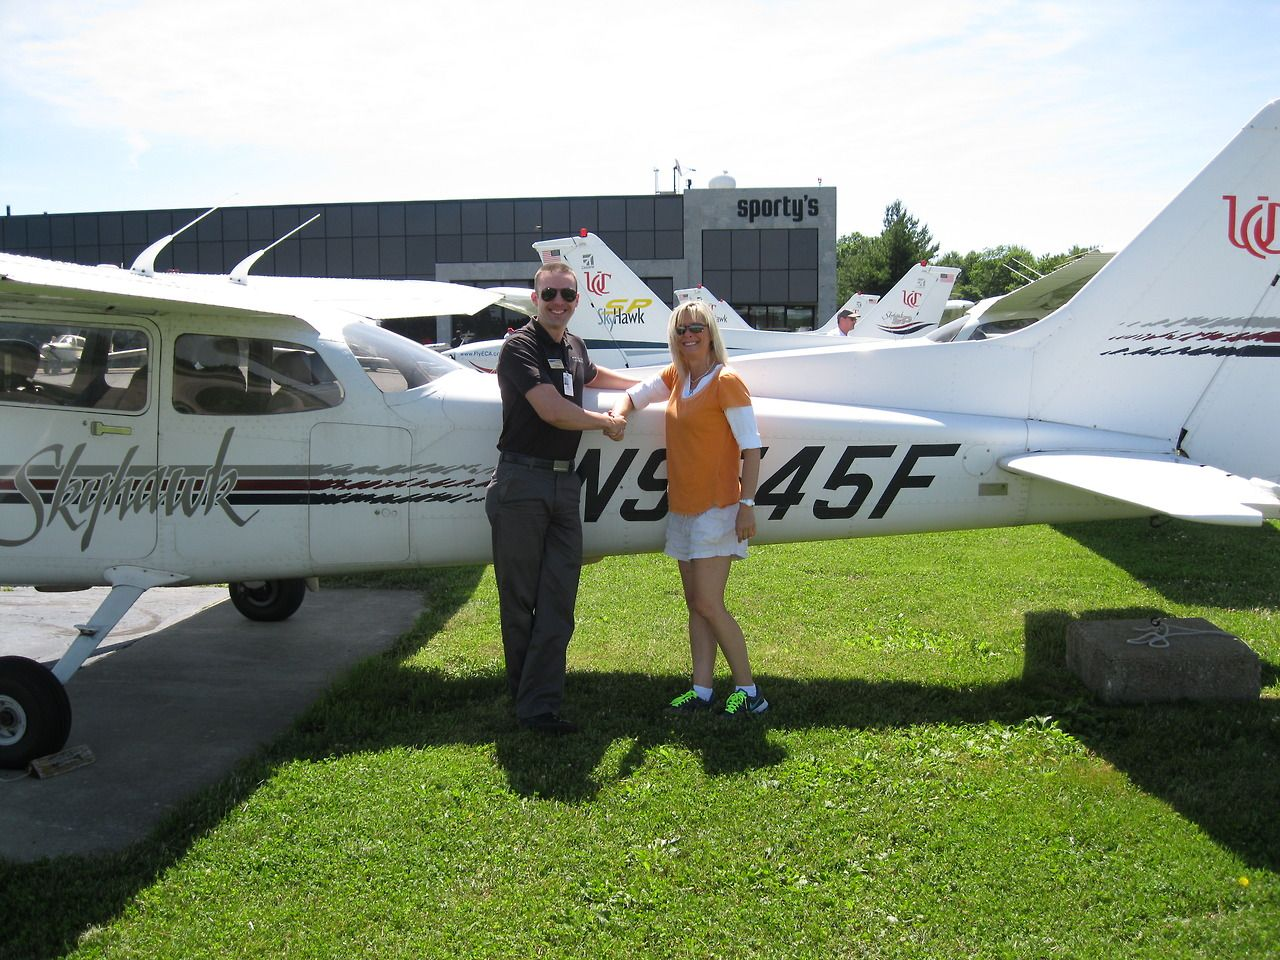 Michelle Hay soloed in a singleengine aircraft on June 14